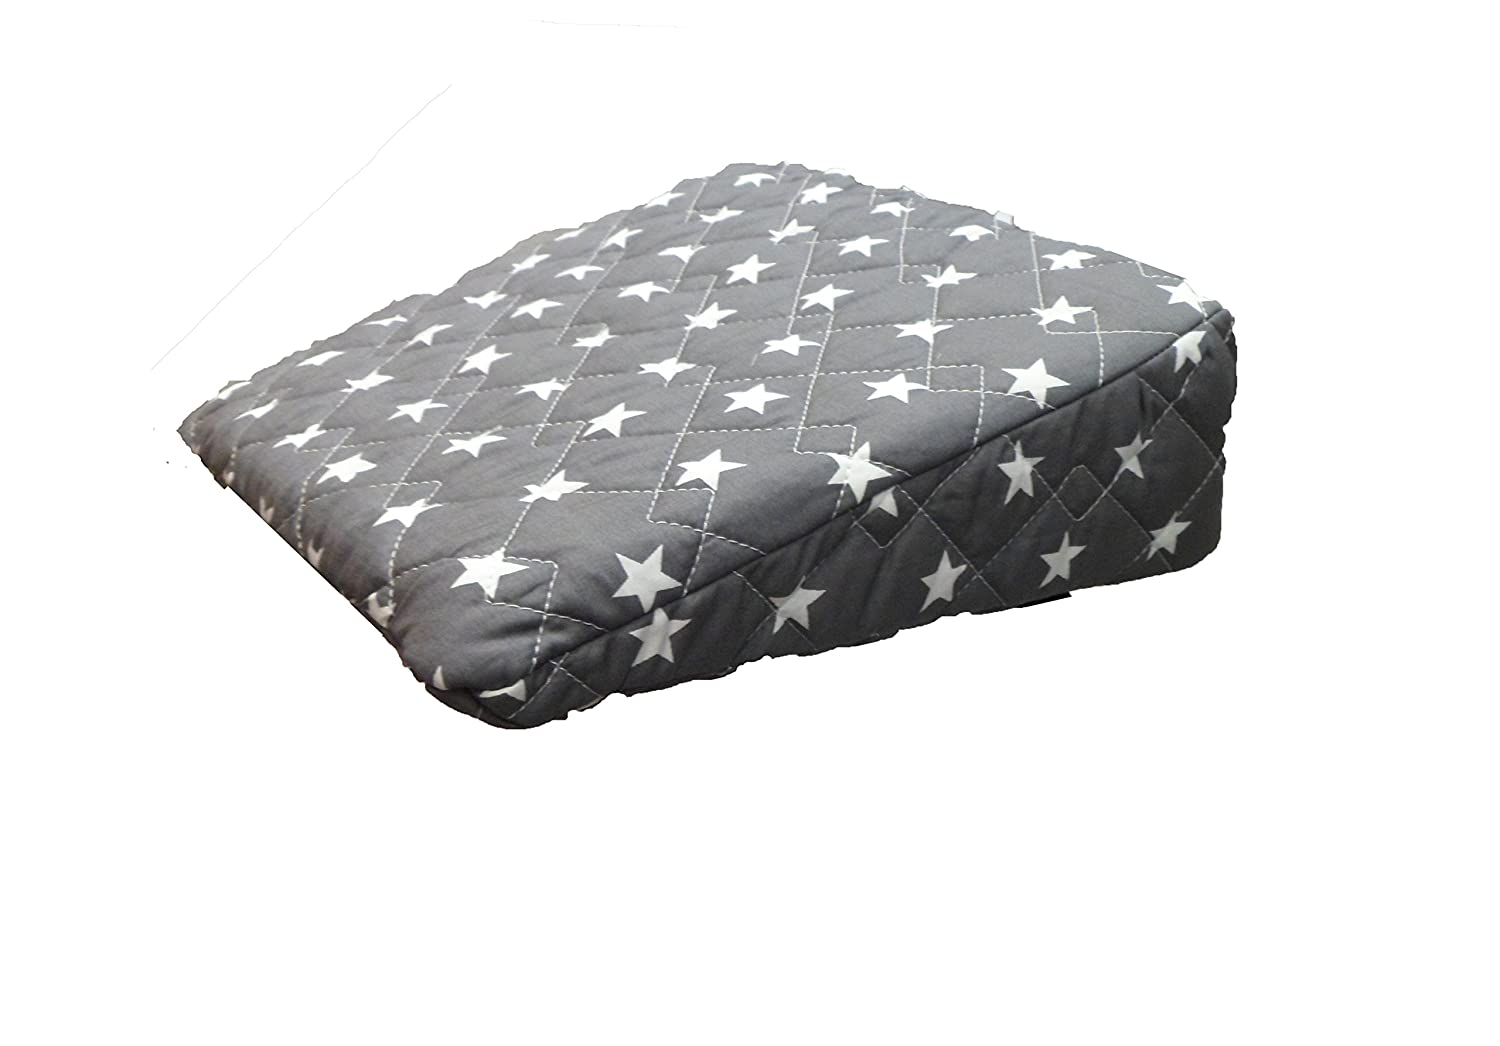 Pregnancy Maternity Large Comfy Back & Bump Support WEDGE Cushion - DARK GREY STARS - WITH QUILTED COVER - 30x30cm Baby Best Buys